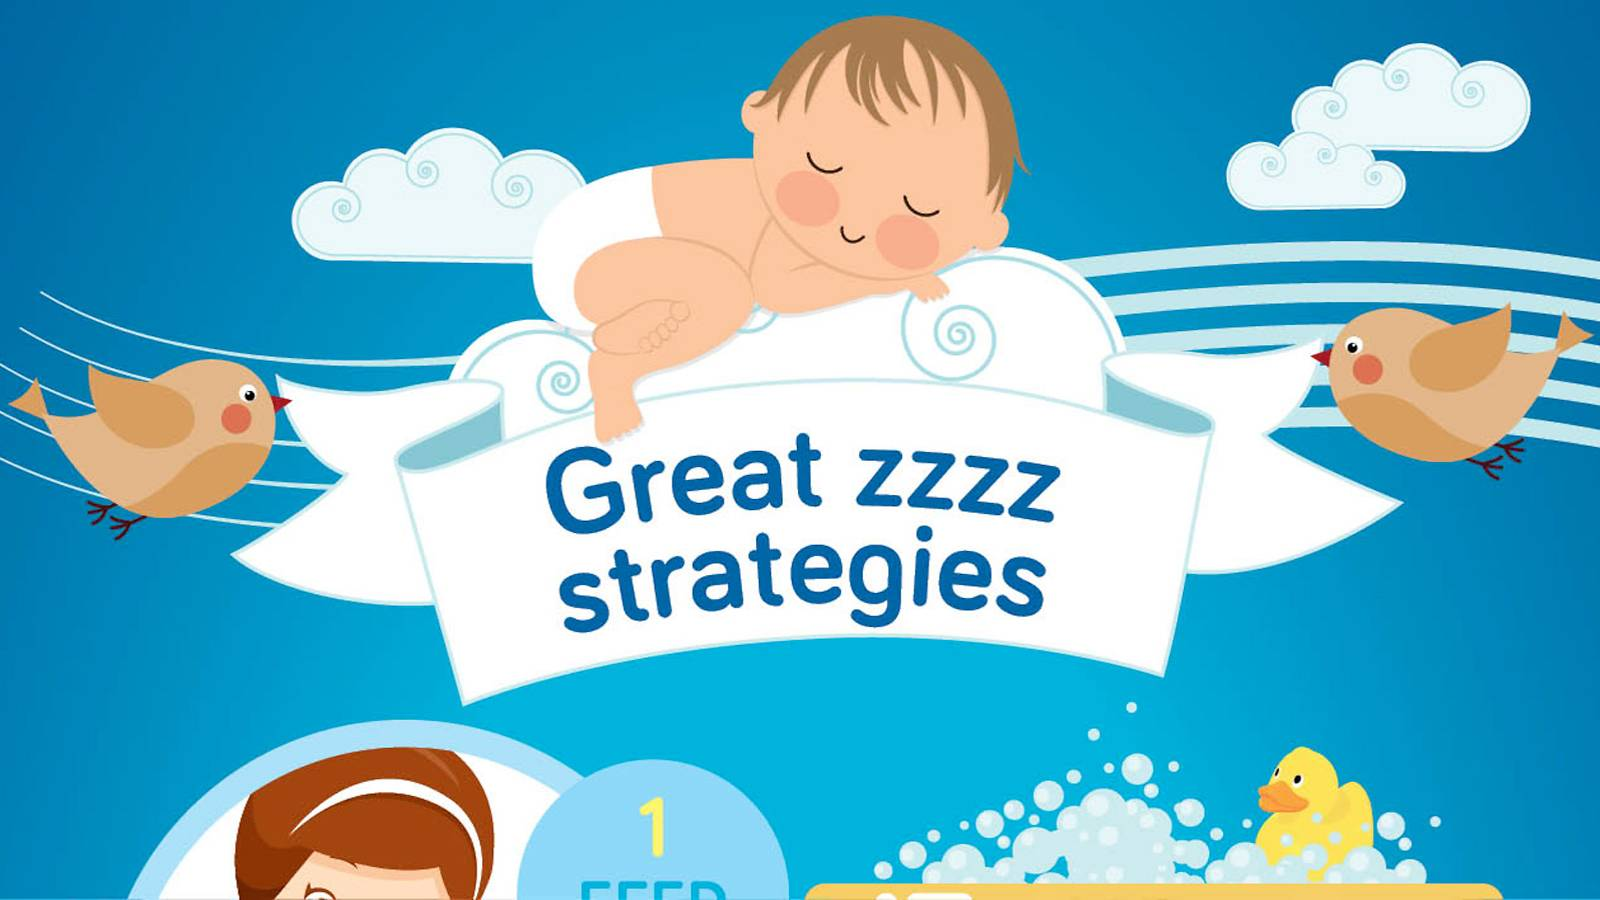 Babies-8-ways-to-help-your-baby-sleep-soundly-[Infographic]-1